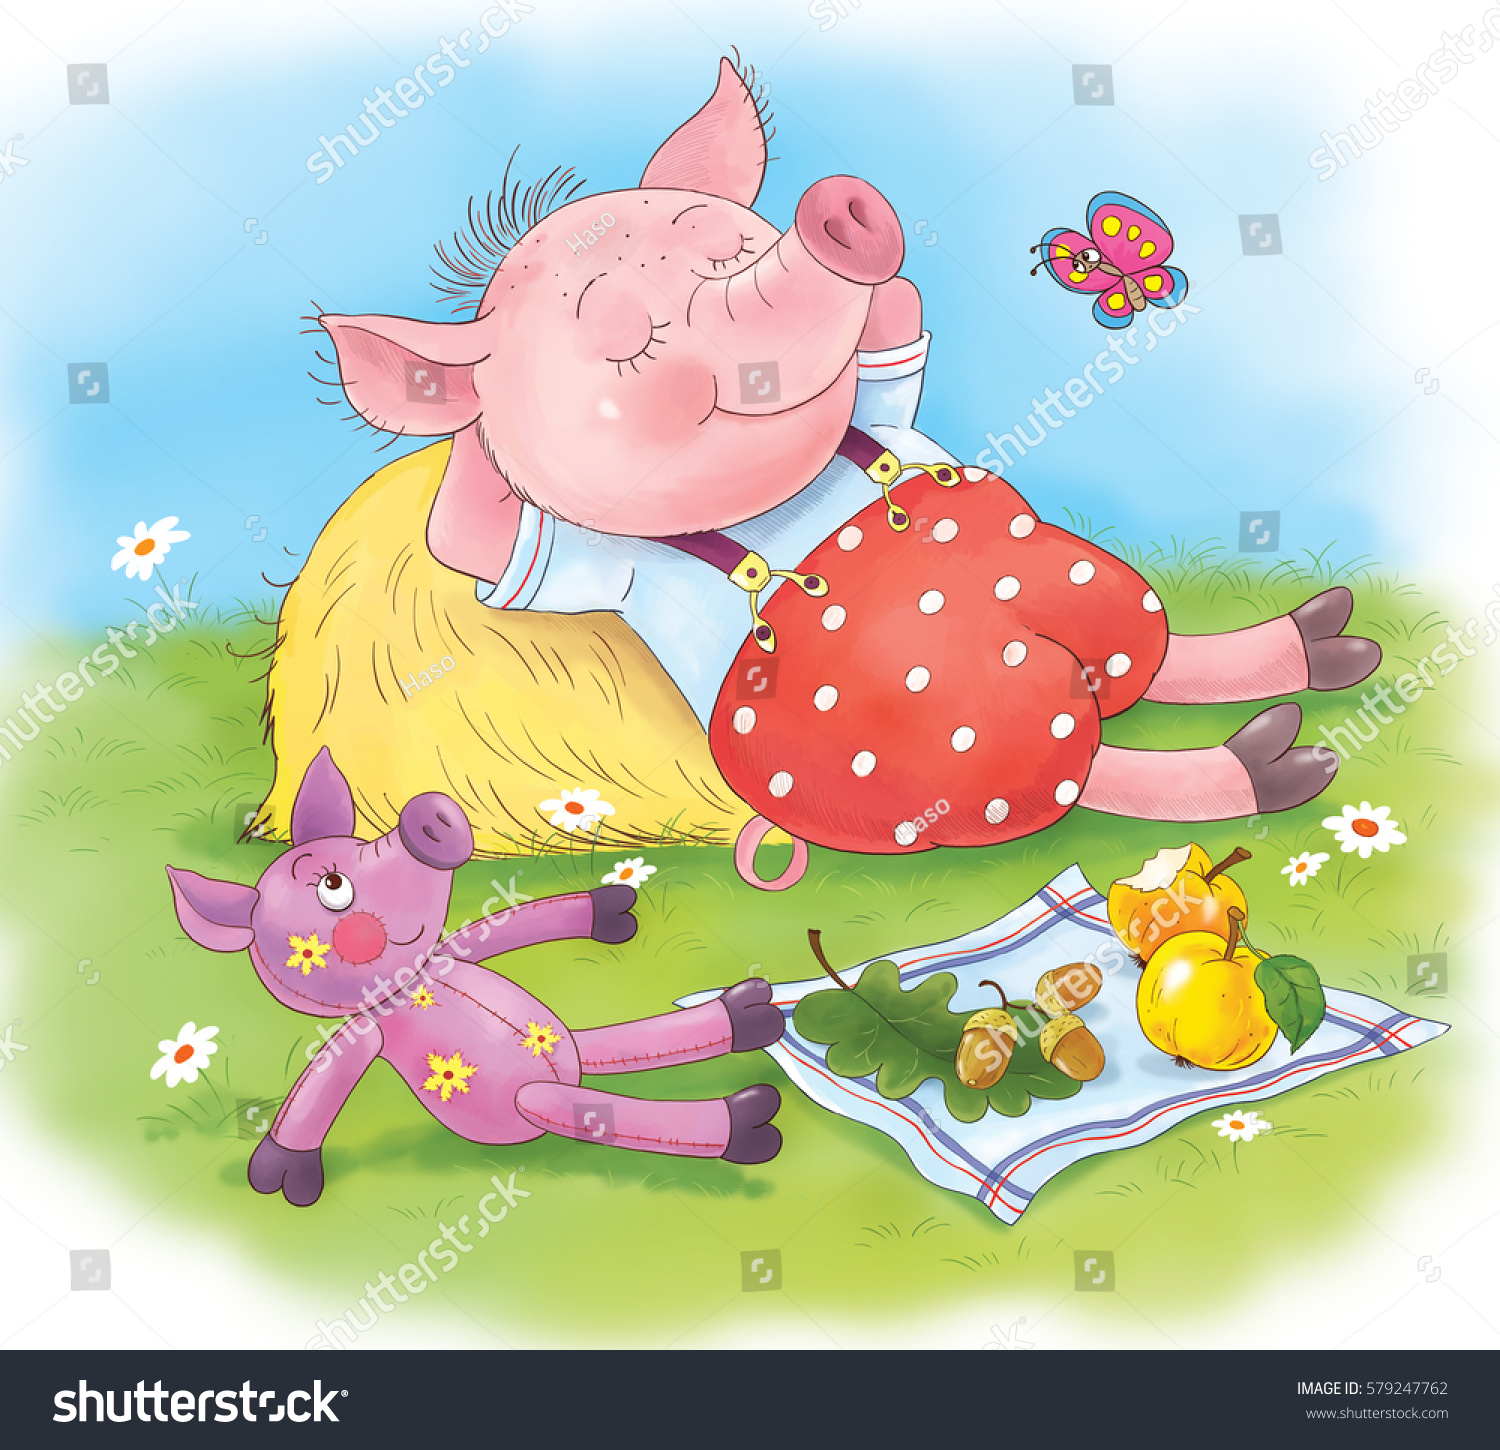 three little pigs fairy tale cute stock illustration 579247762